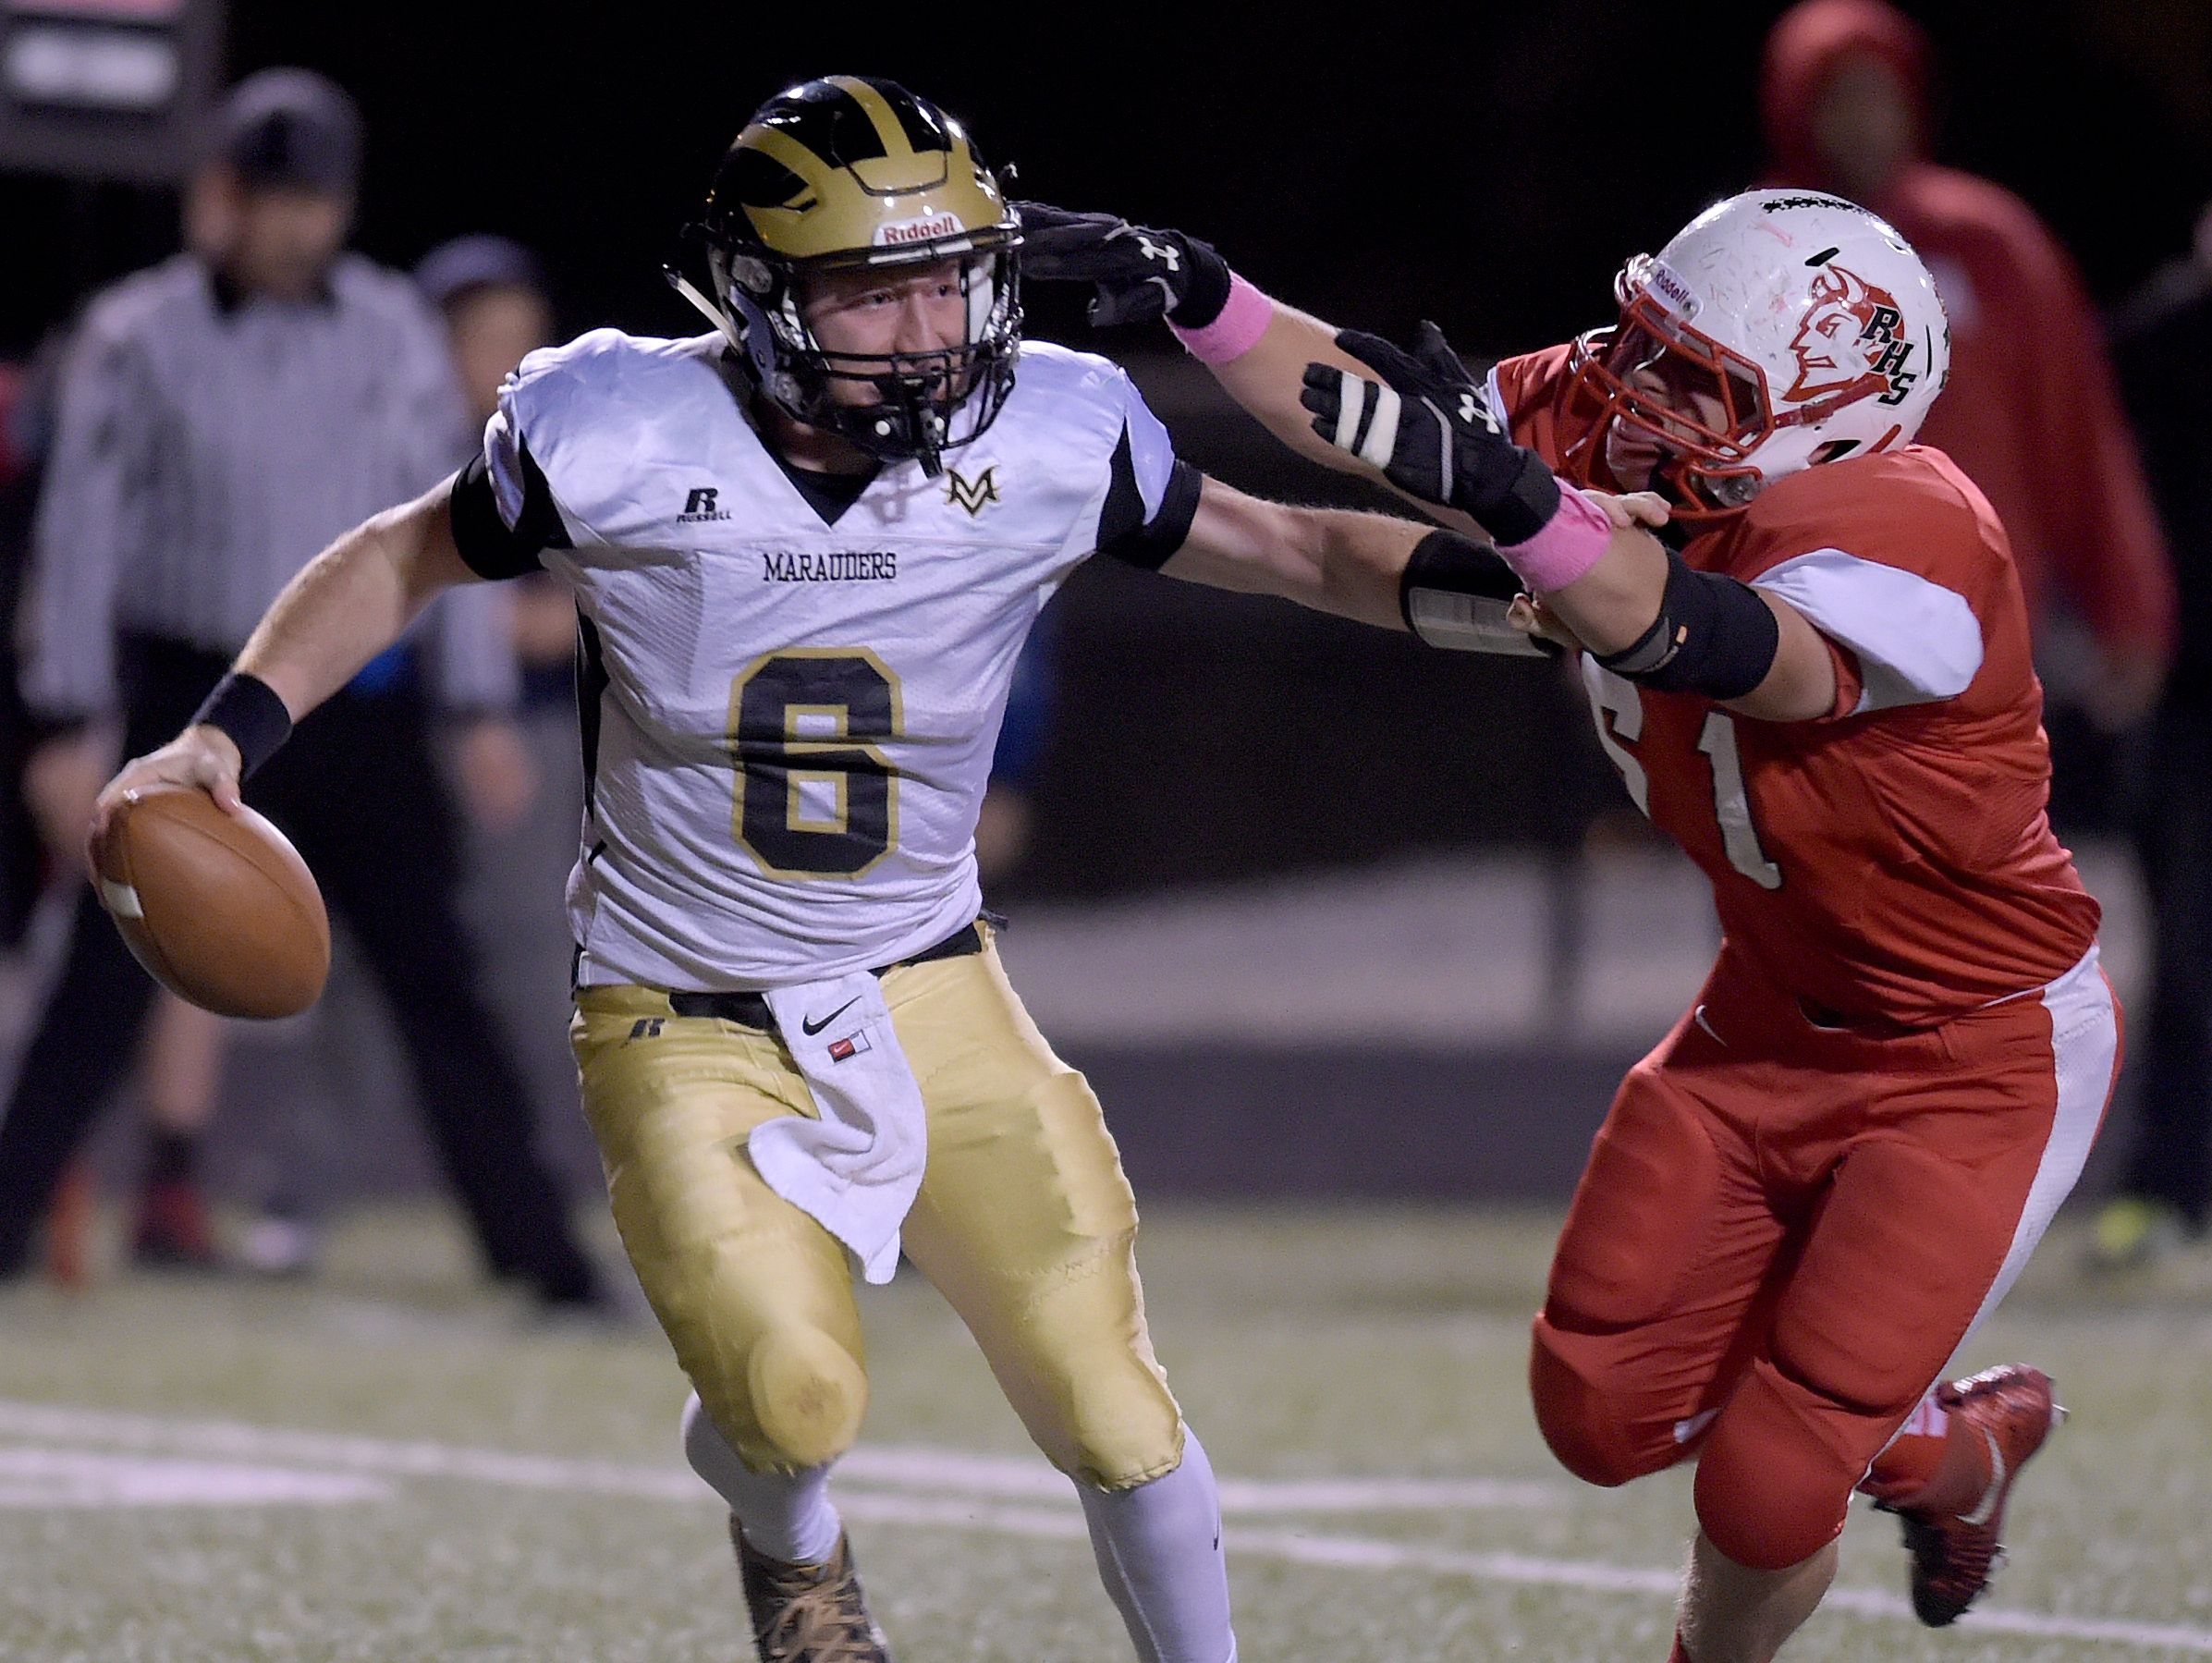 Quarterback Zac Montgomery (left) will try to guide Mt. Vernon to another sectional title.